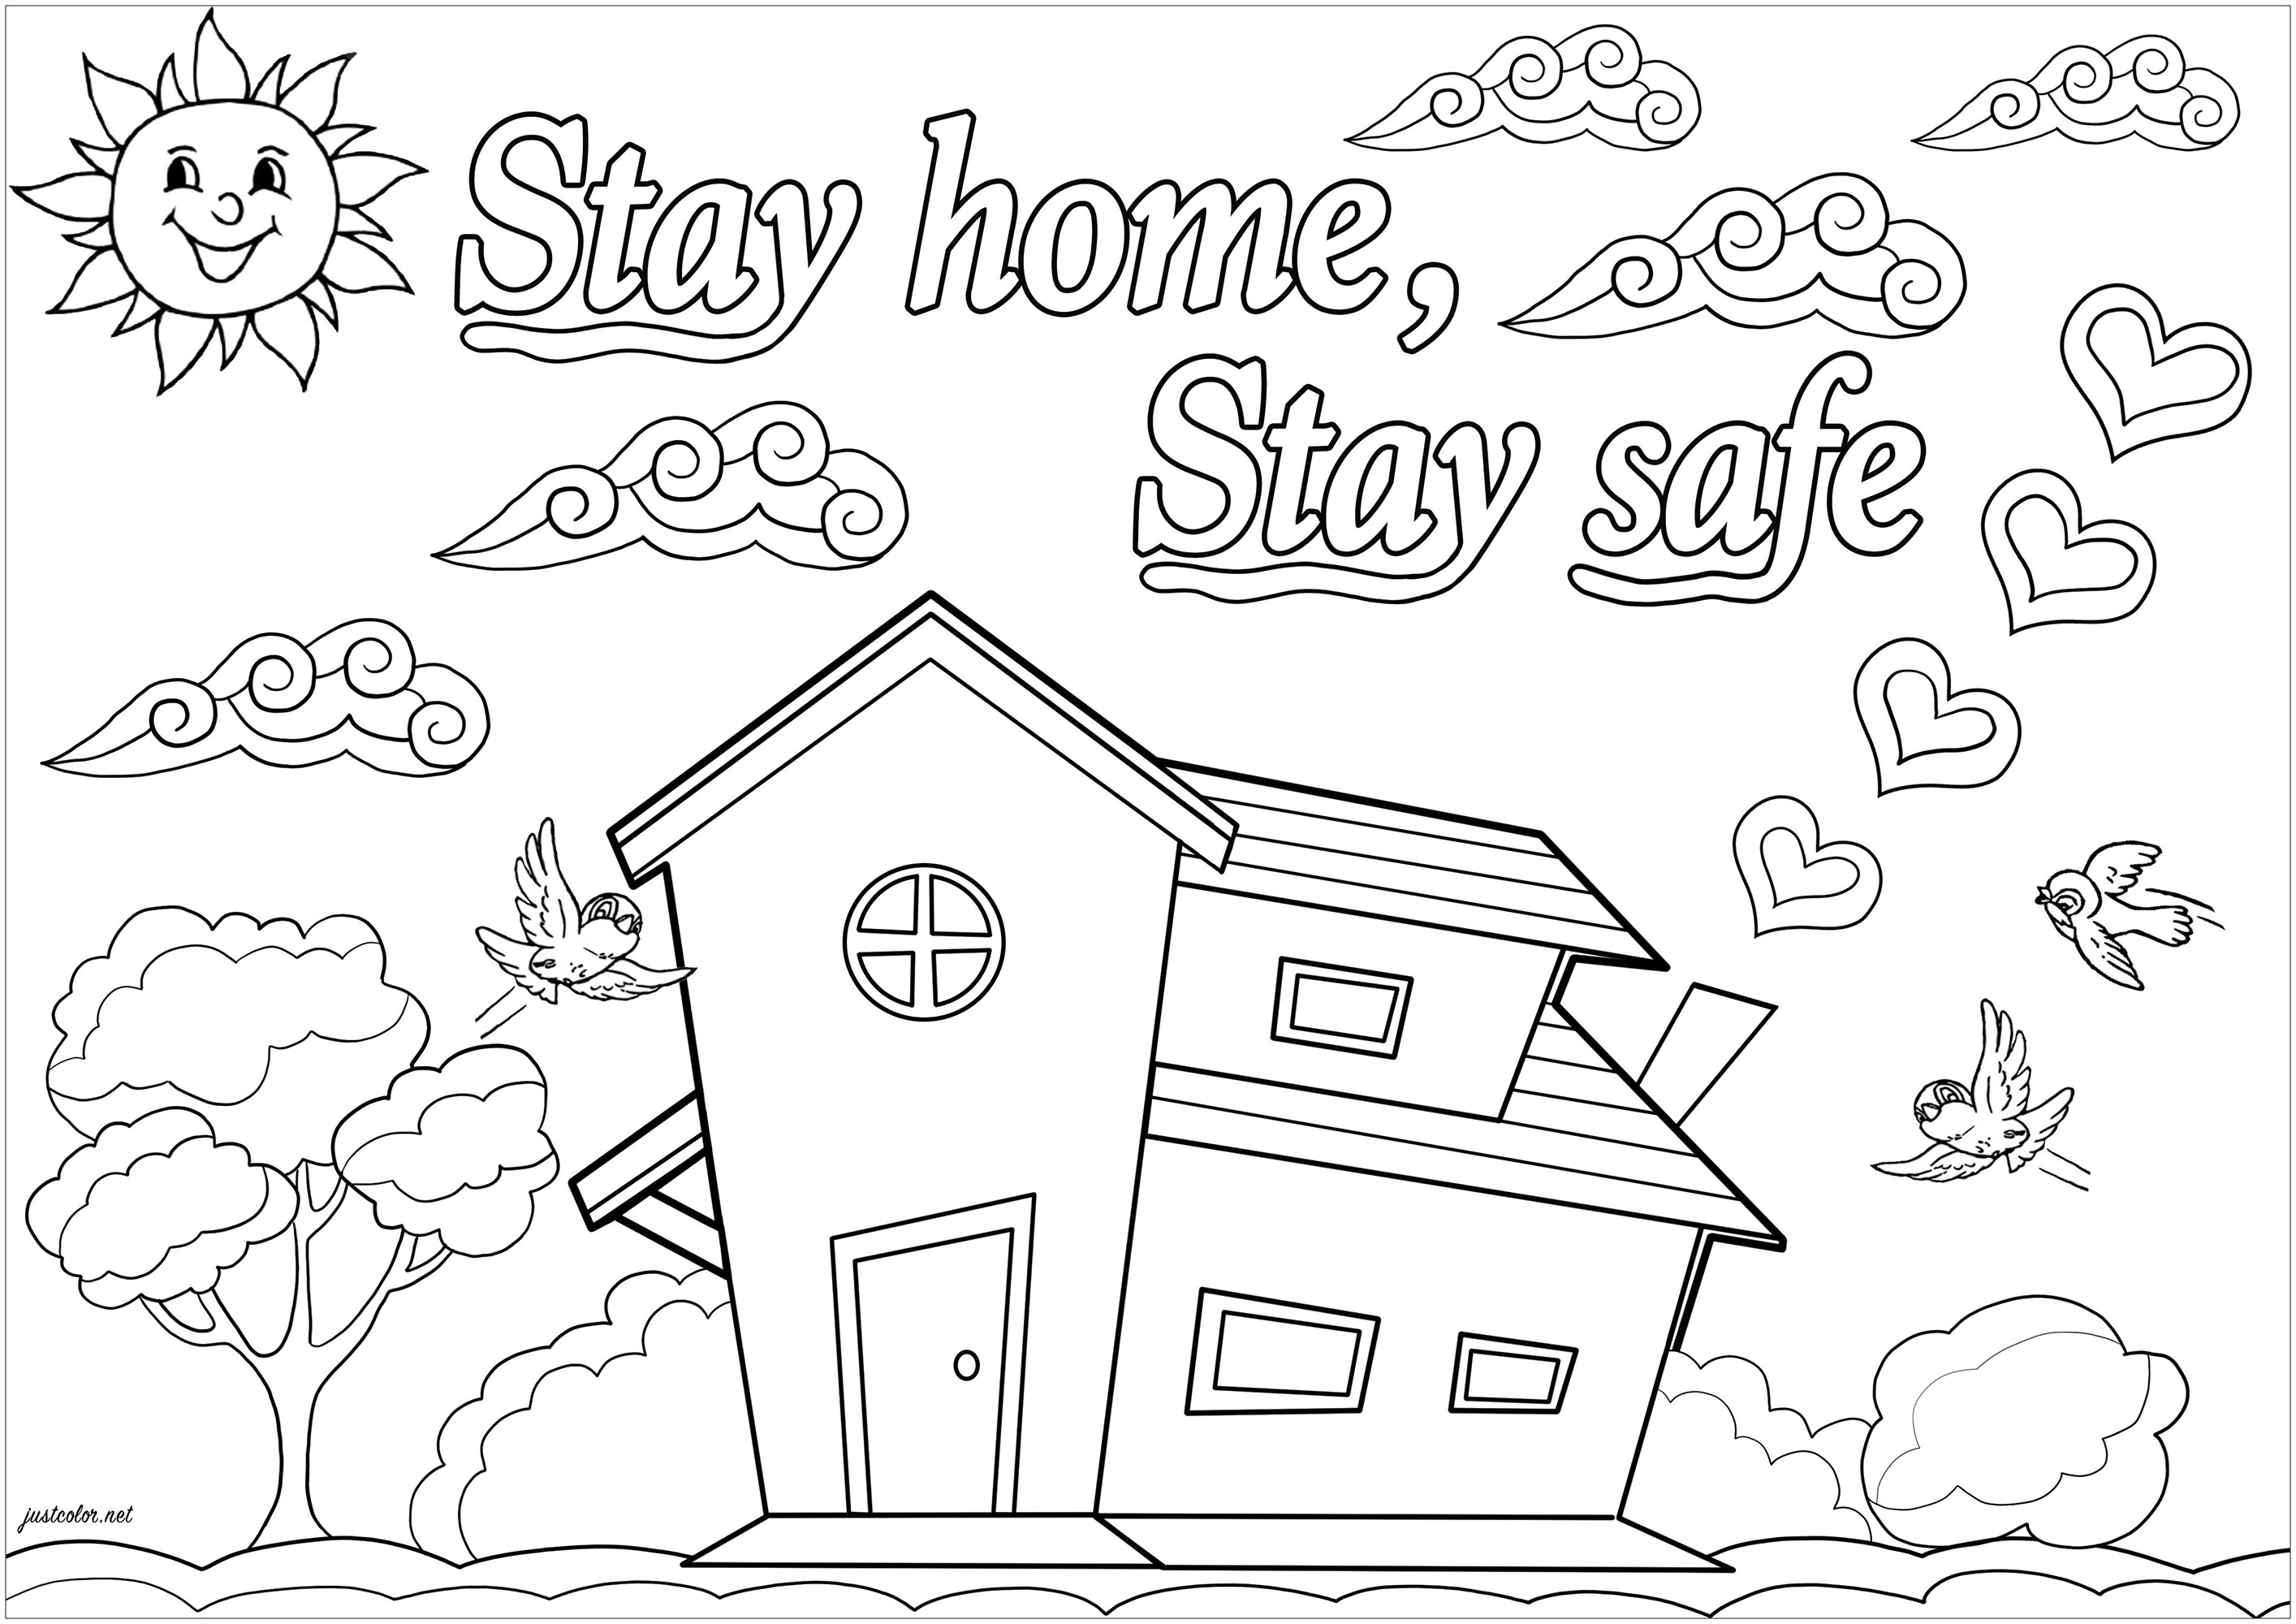 Stay home, stay safe ! Together, fight against COVID-19